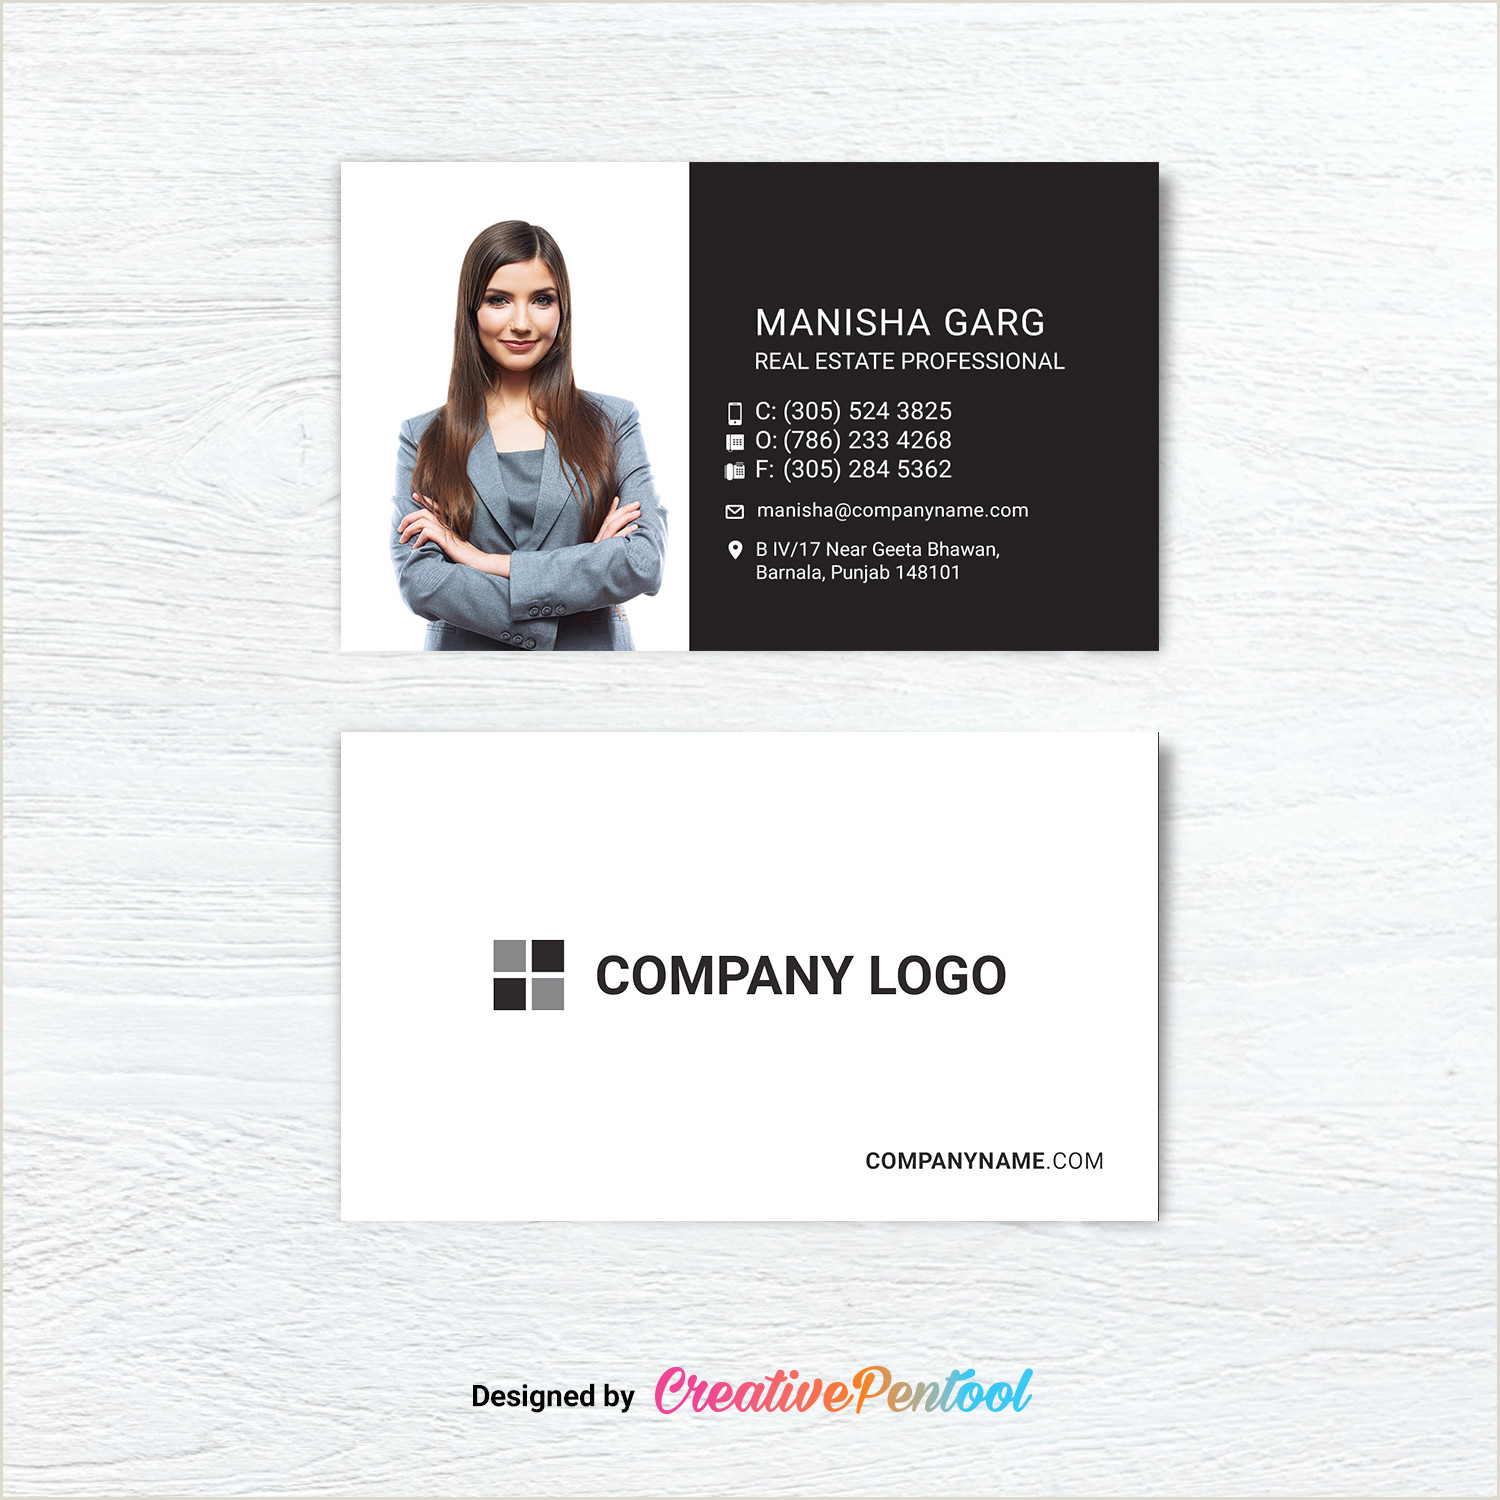 Unique Headshot Business Cards Business Card For Agent With Headshot Creativepentool